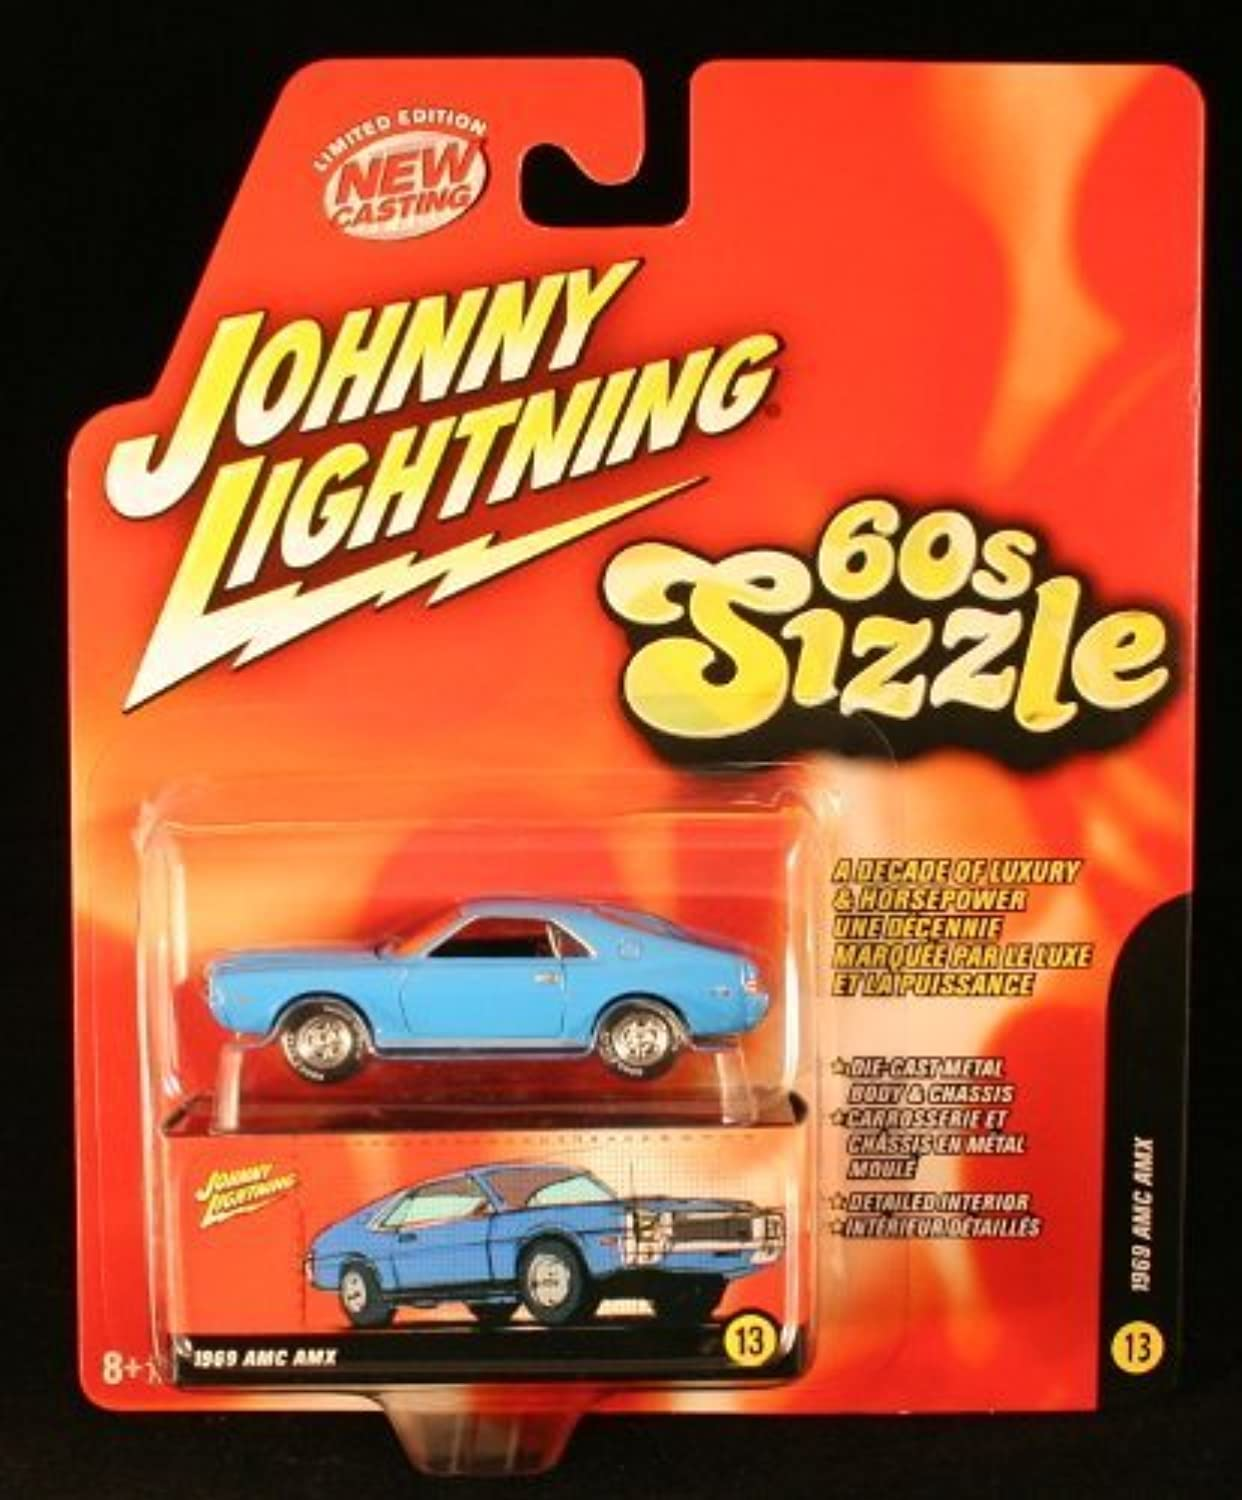 toma 1969 AMC AMC AMC AMX  azul  60s Sizzle Johnny Lightning 2006 Die-Cast Vehicle  13 of 16 by Rc2  promociones de equipo